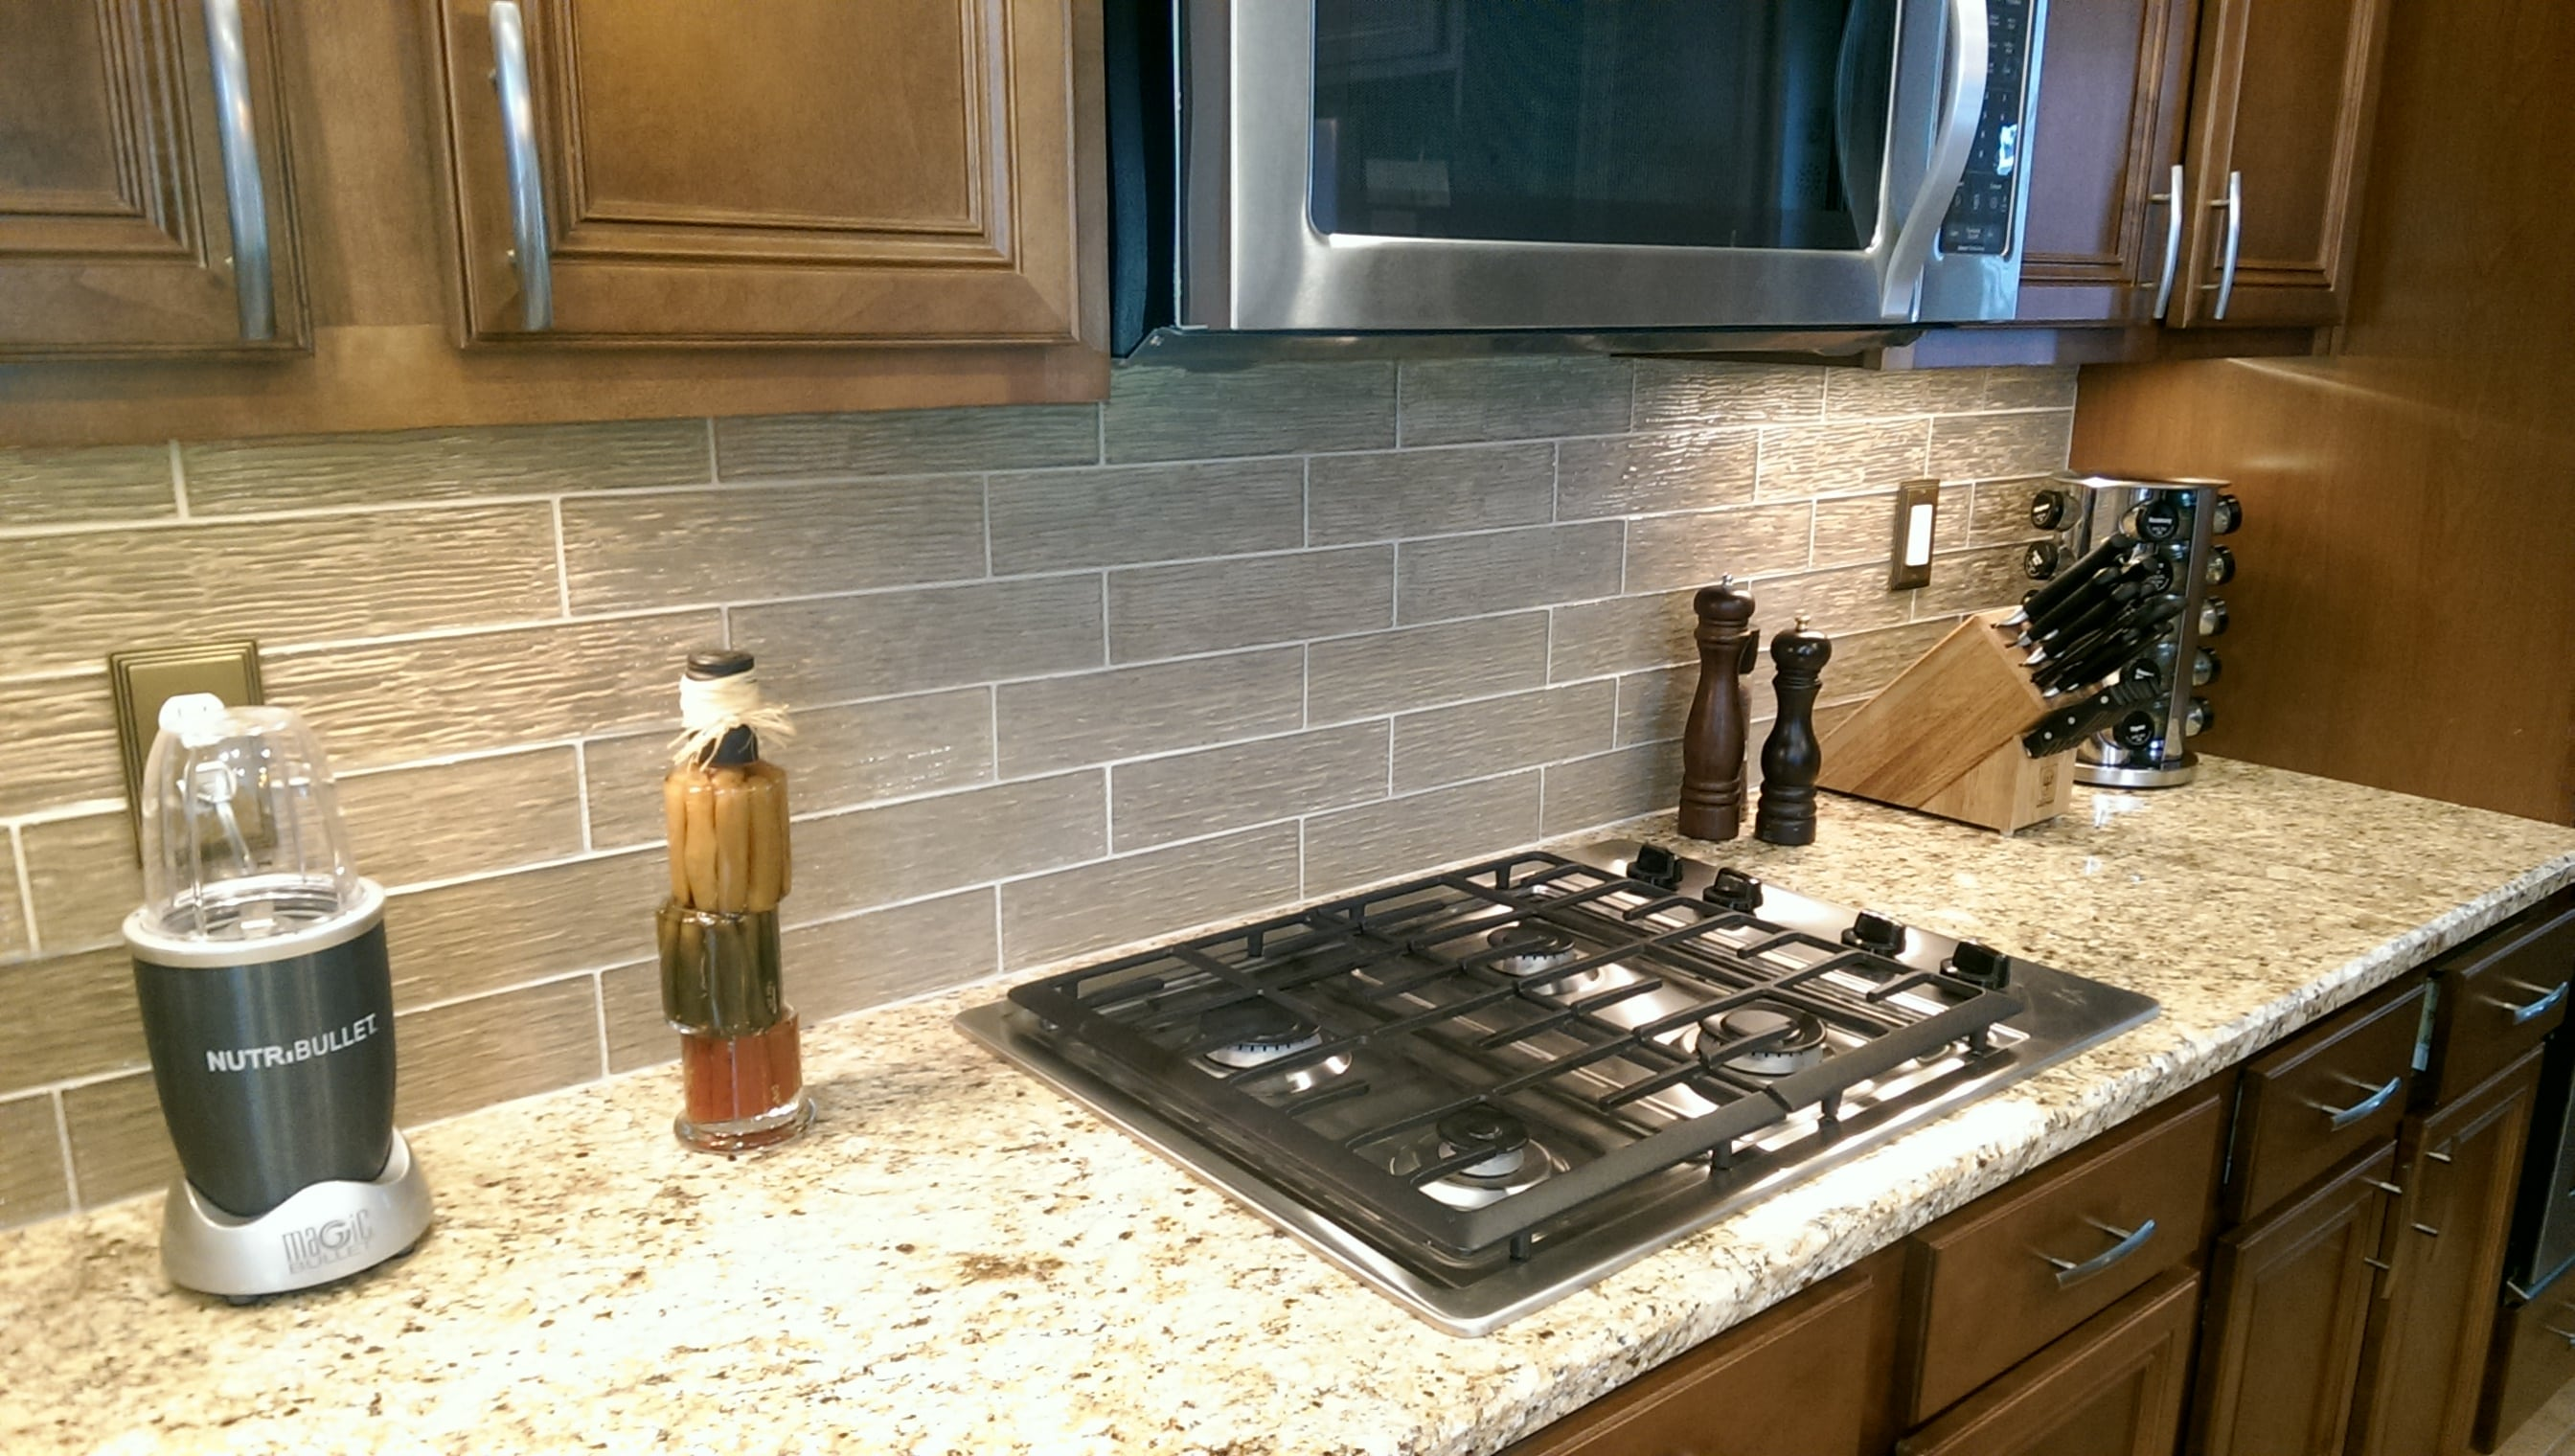 Decorative Tile Backsplashes In Hanover, PA